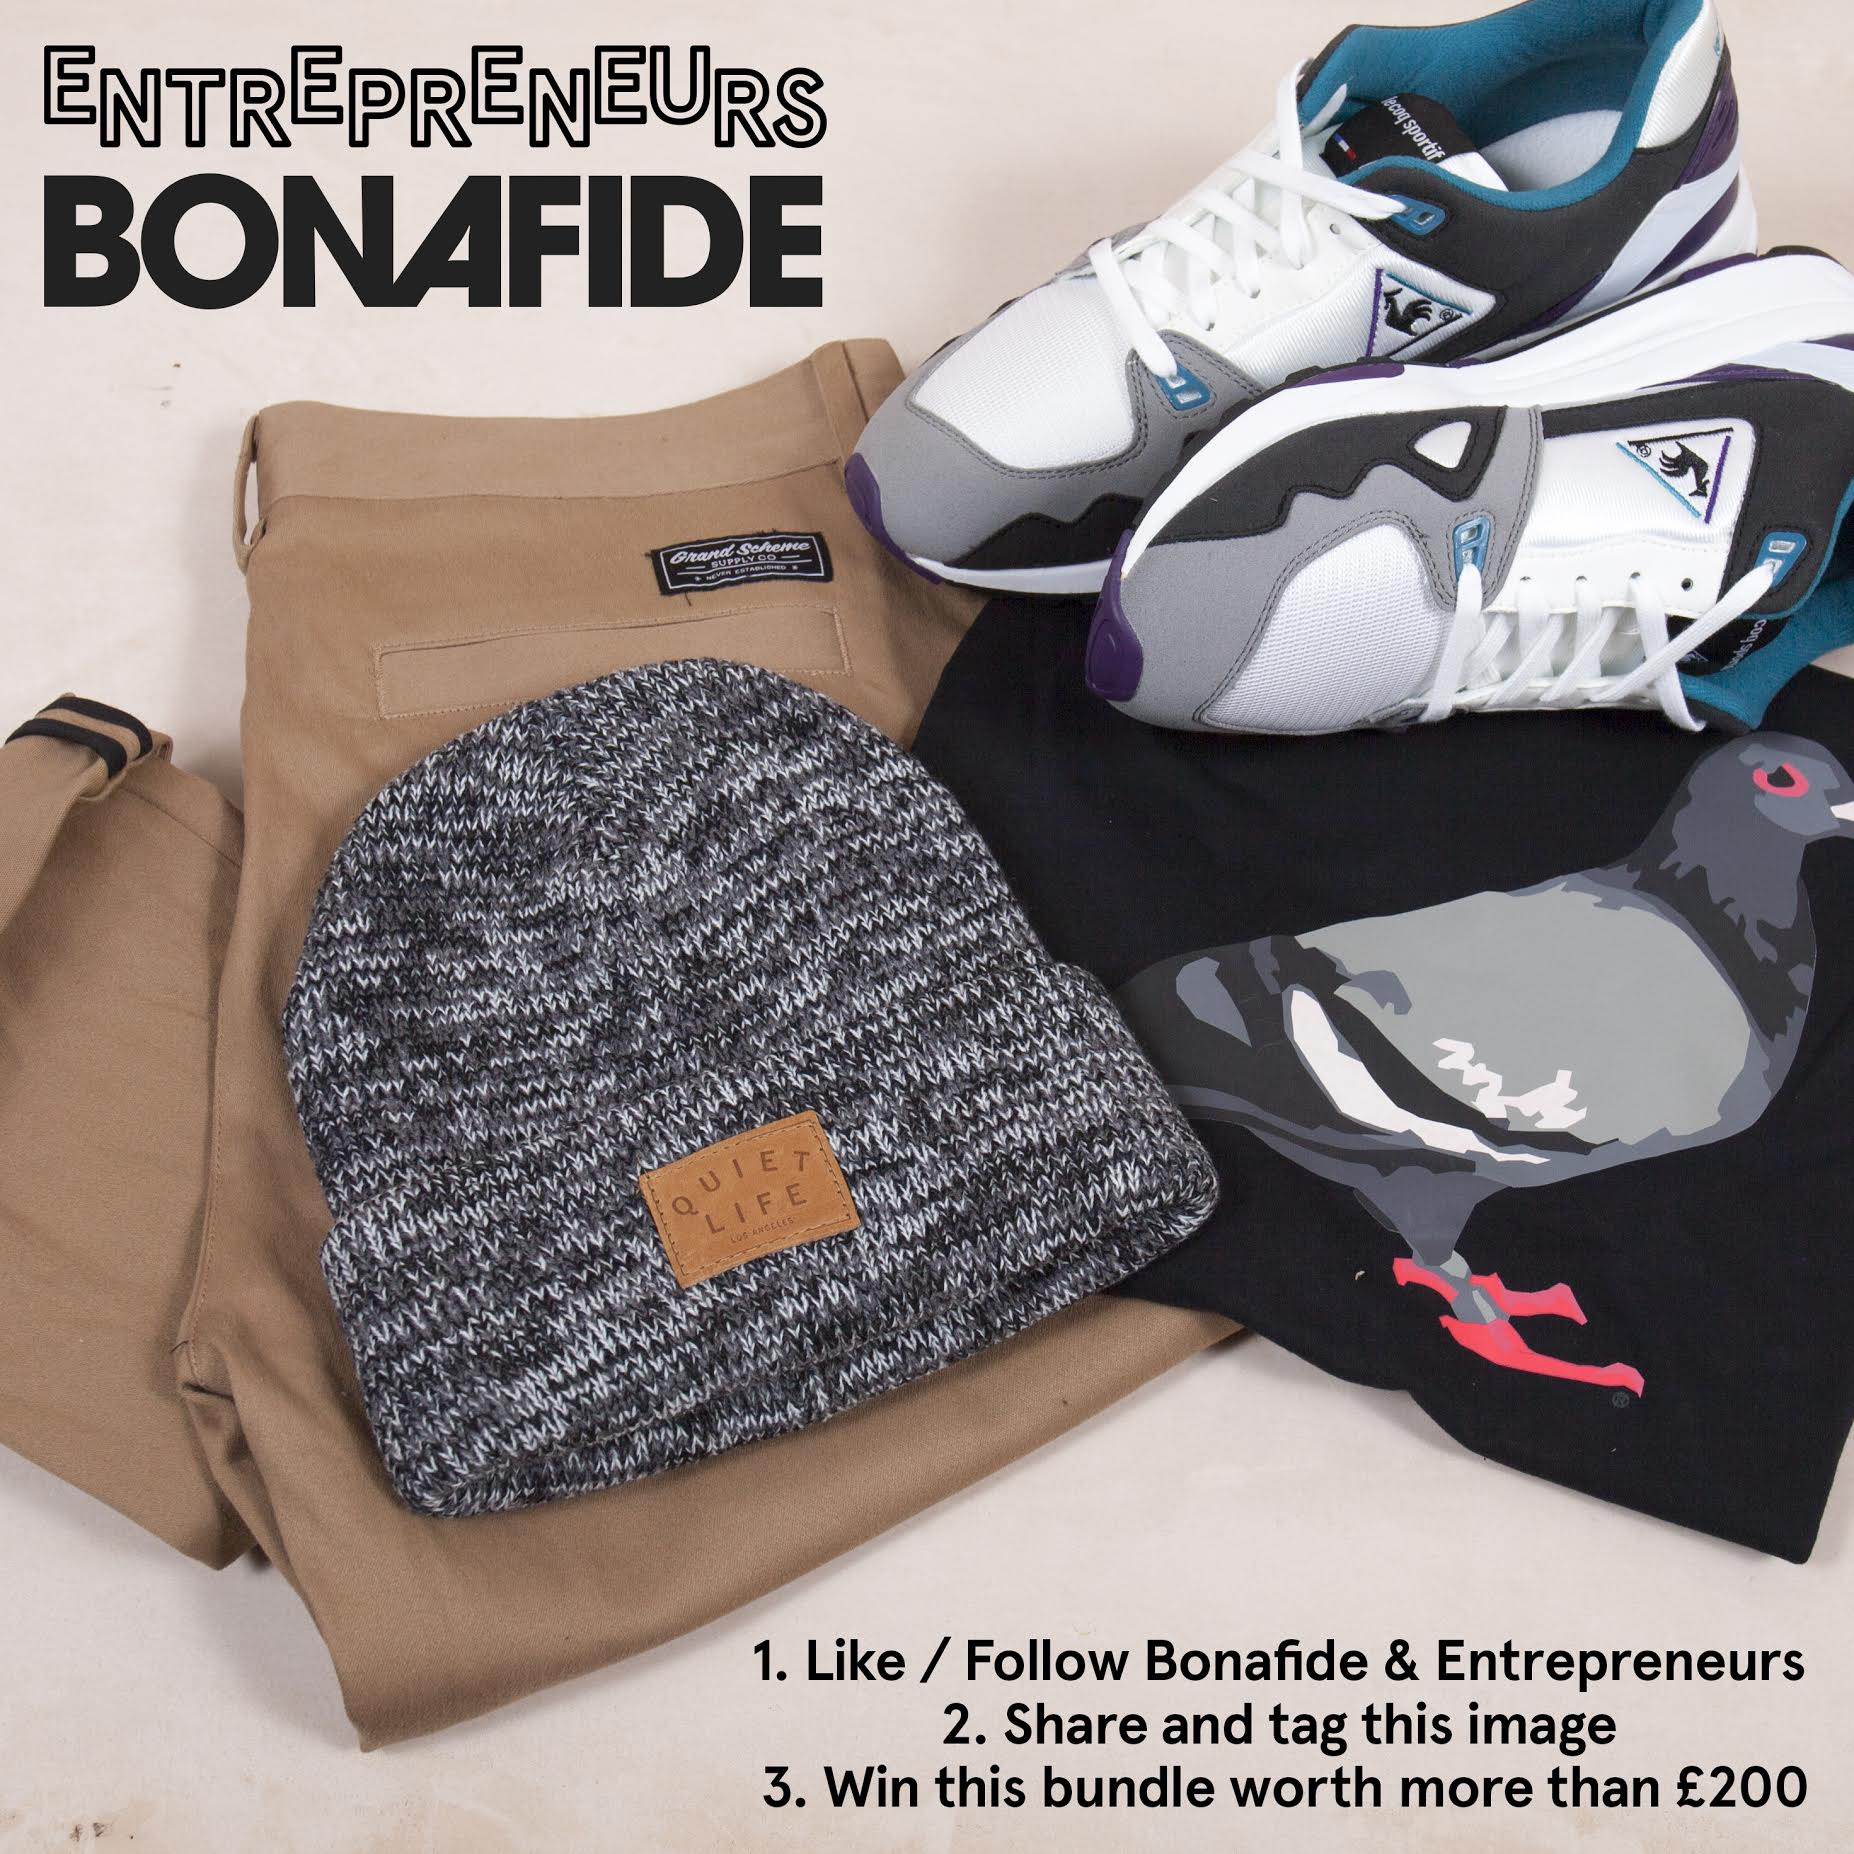 Win £200 worth of clothing from Entrepreneurs